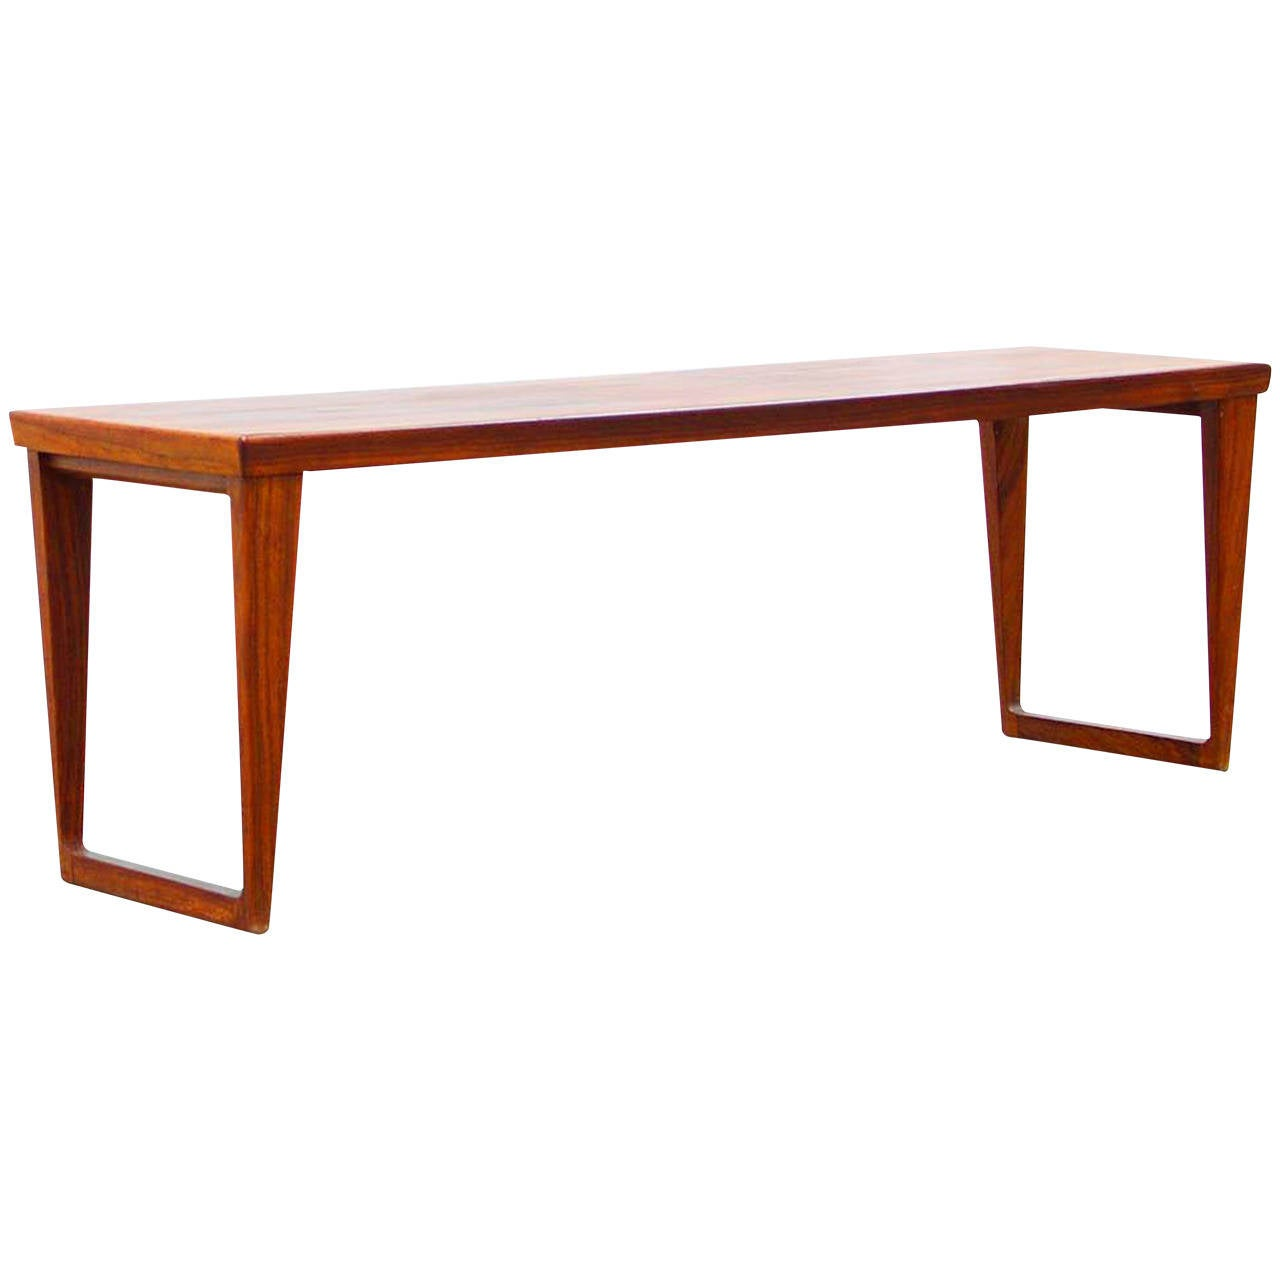 Bench Table By Aksel Kjaersgaard No 36 Rosewood Mid Century Danish Modern At 1stdibs